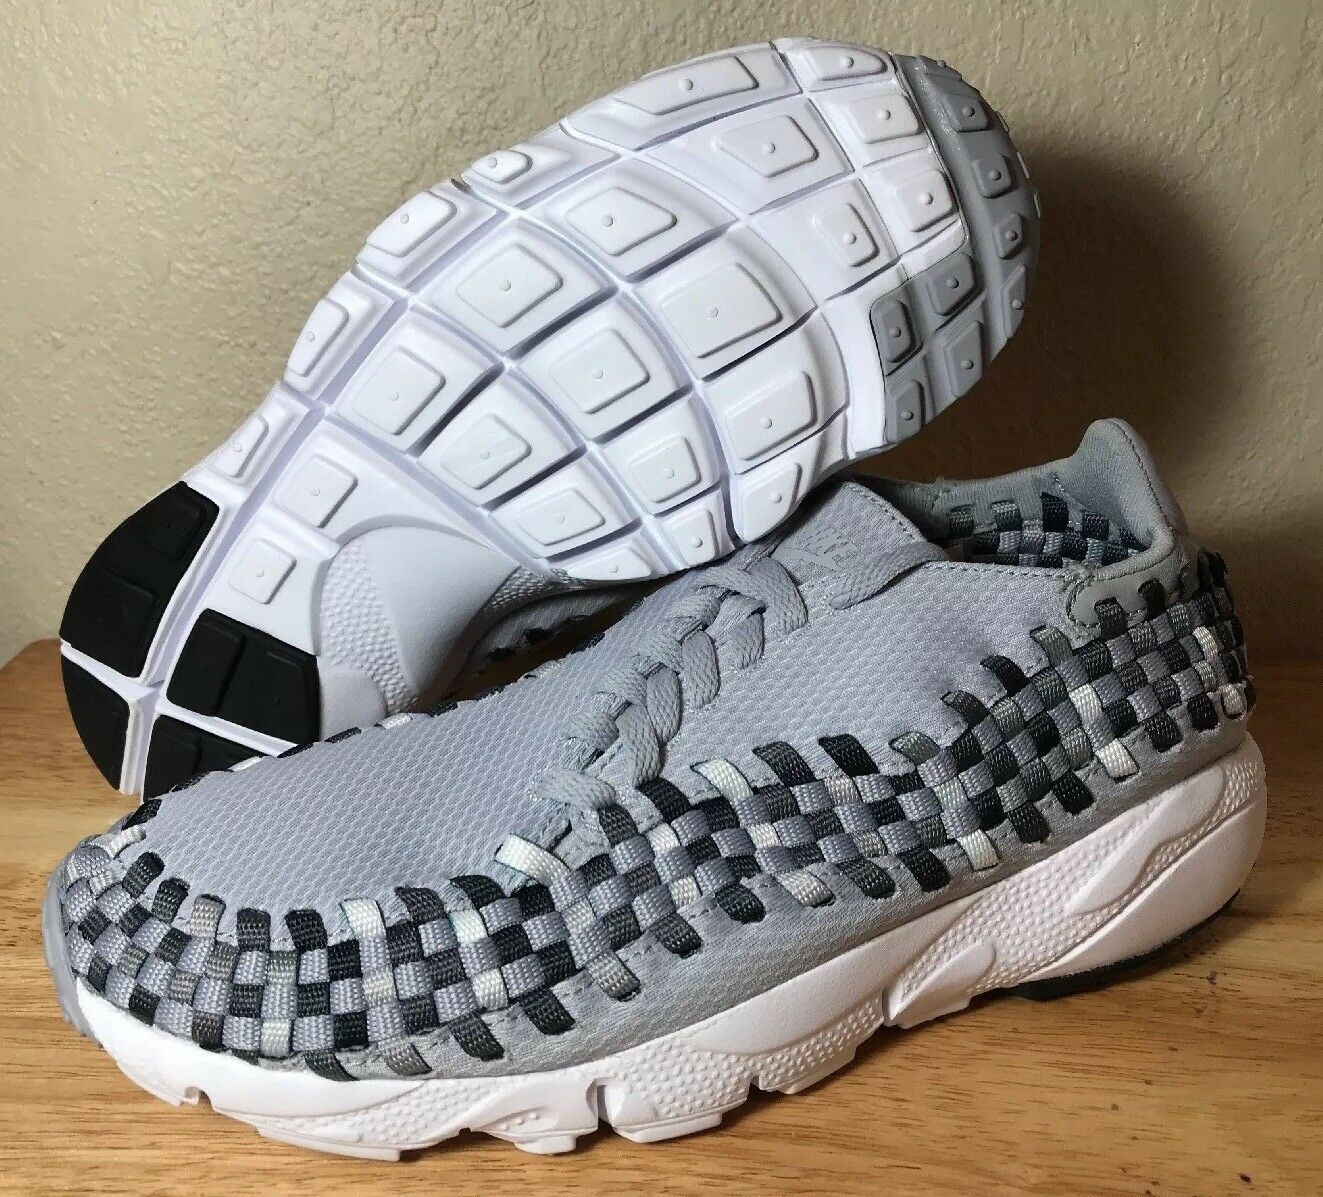 Nike Air Footscape Woven NM Size 9 Wolf Grey Black Dark Grey Mens New 875797-004